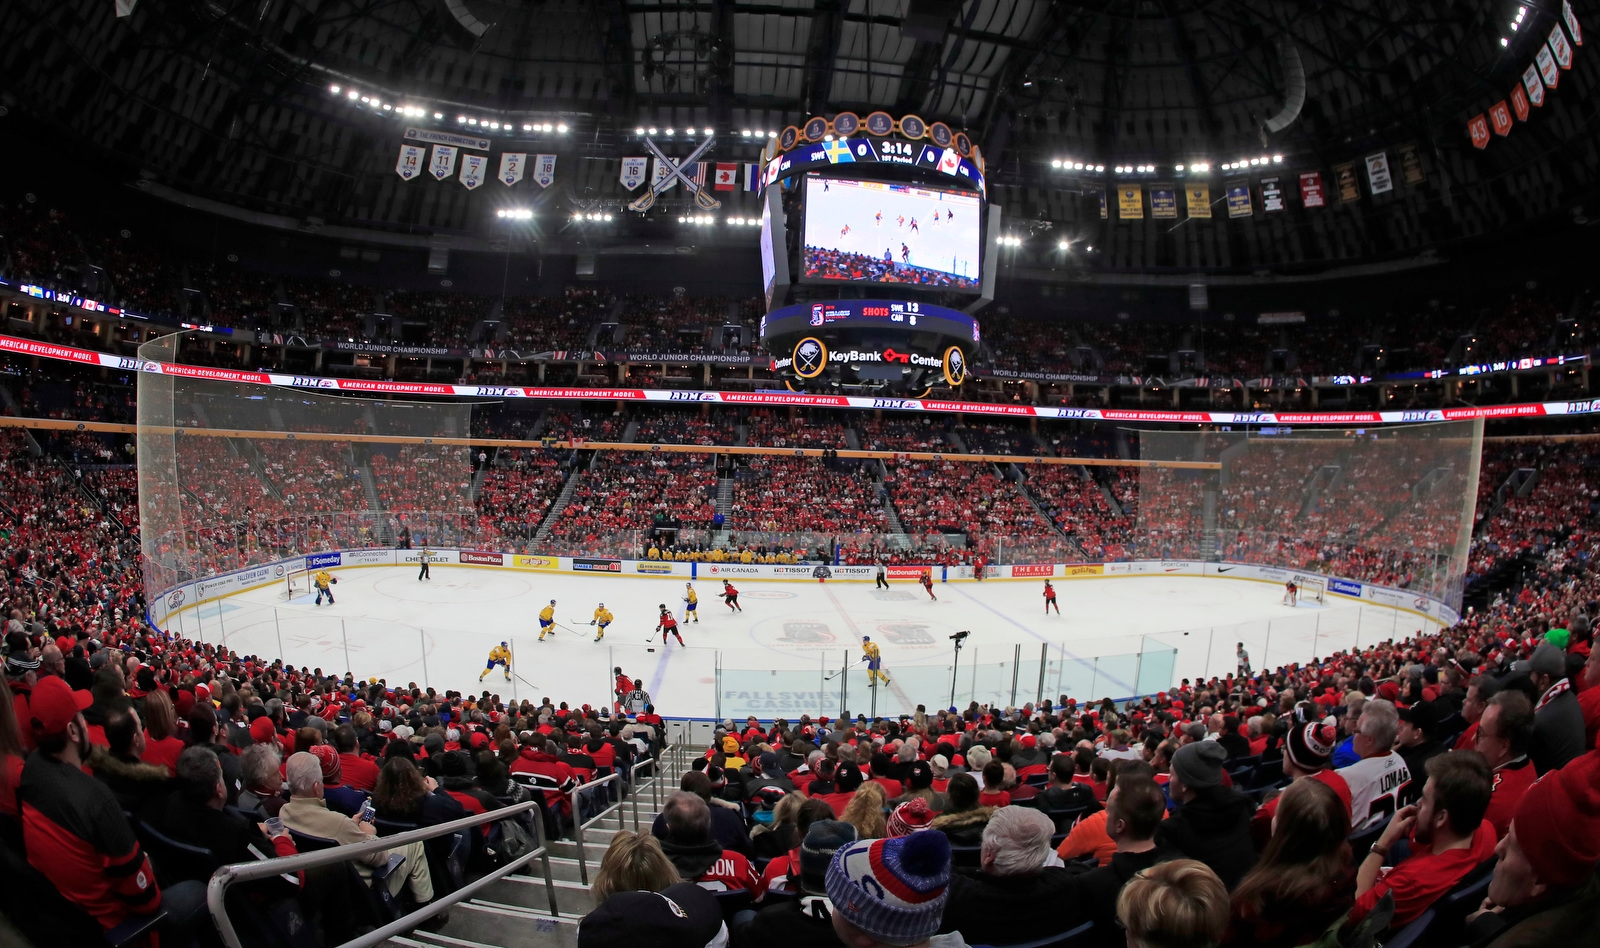 Canada vs Sweden during the first period of the World Junior Gold medal game at the KeyBank Center on Friday, Jan. 5, 2018.